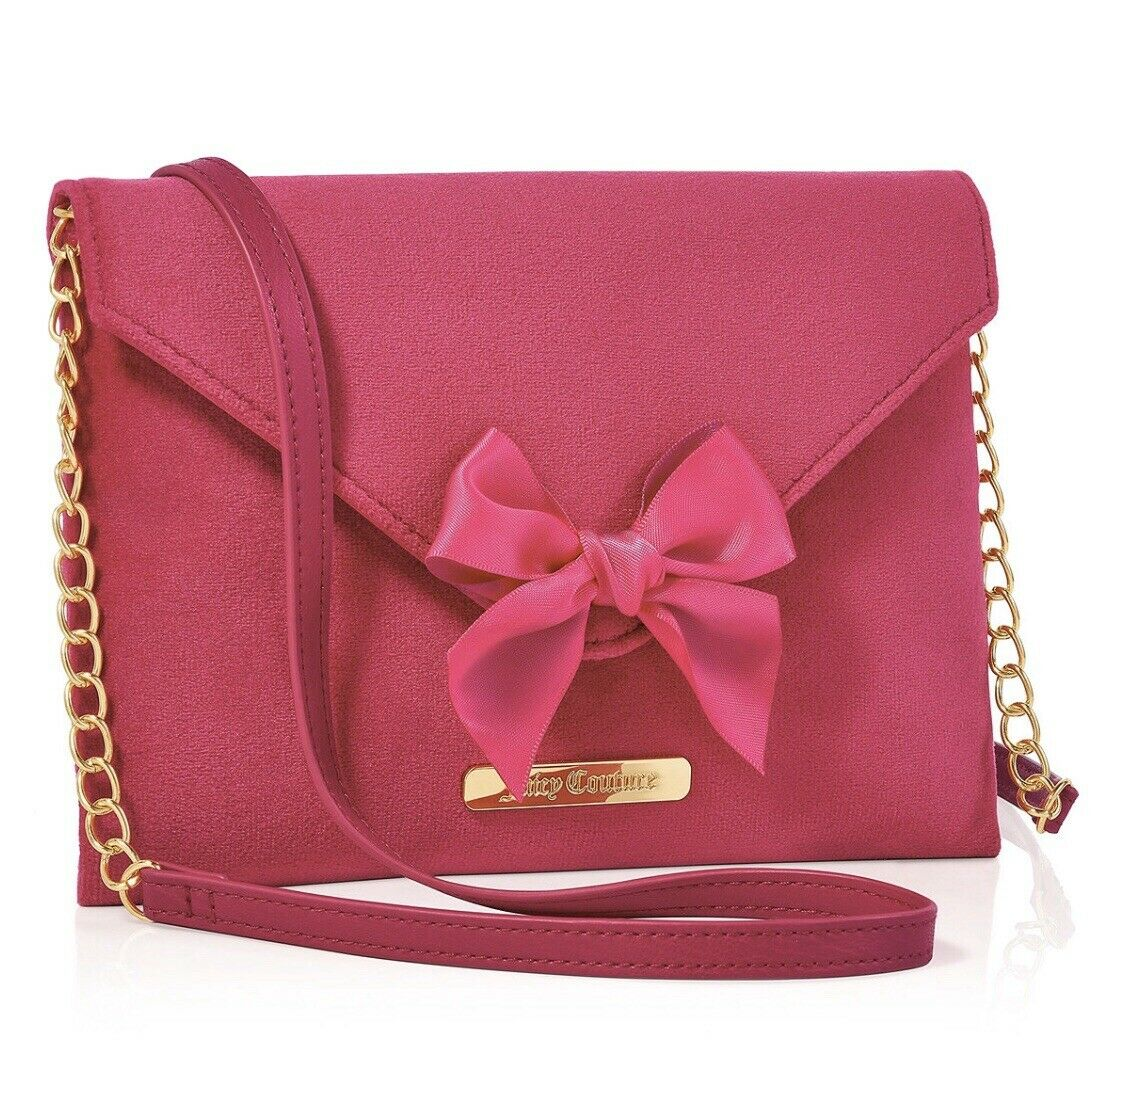 juicy couture hot pink soft bow chain